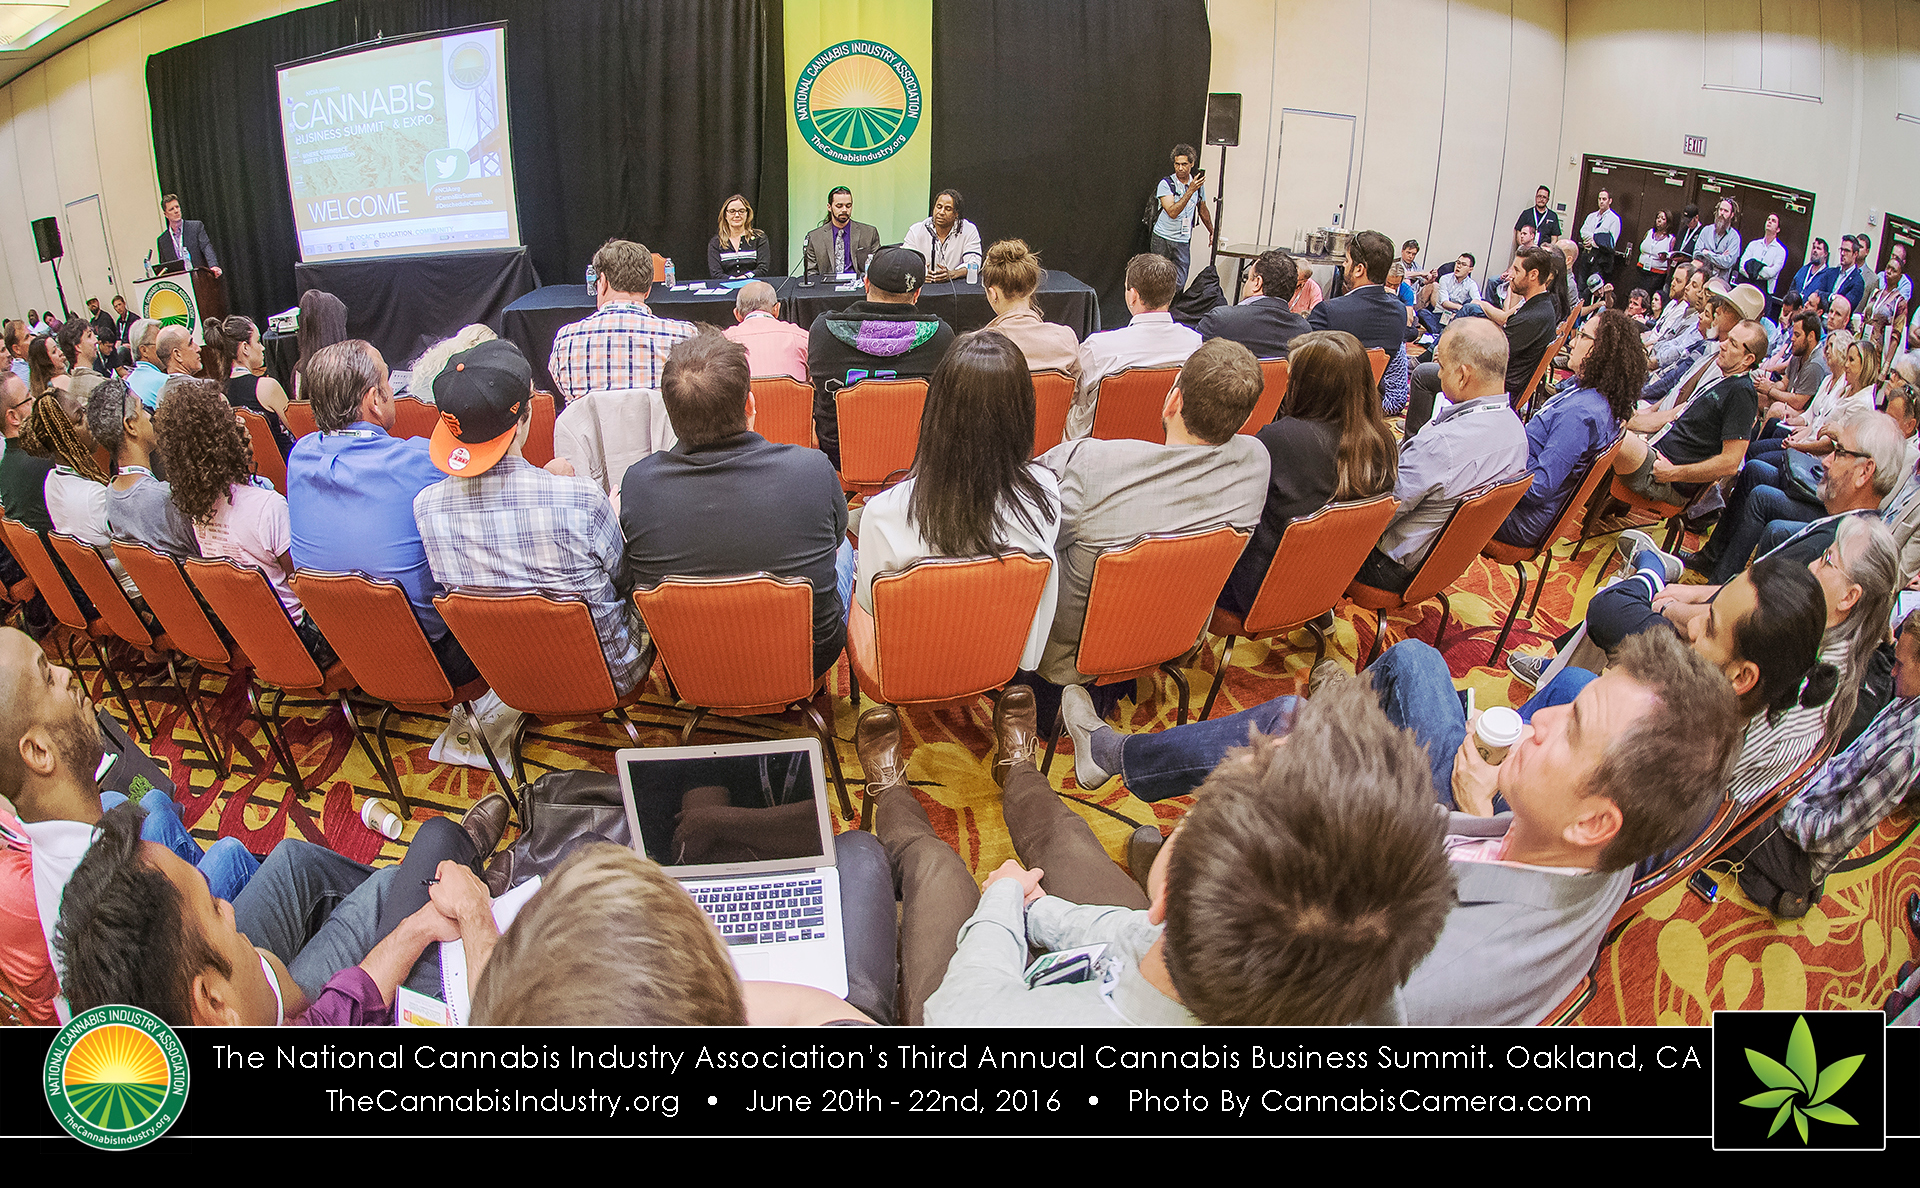 The National Cannabis Industry Associations's Cannabis Business Summit in Oakland, California